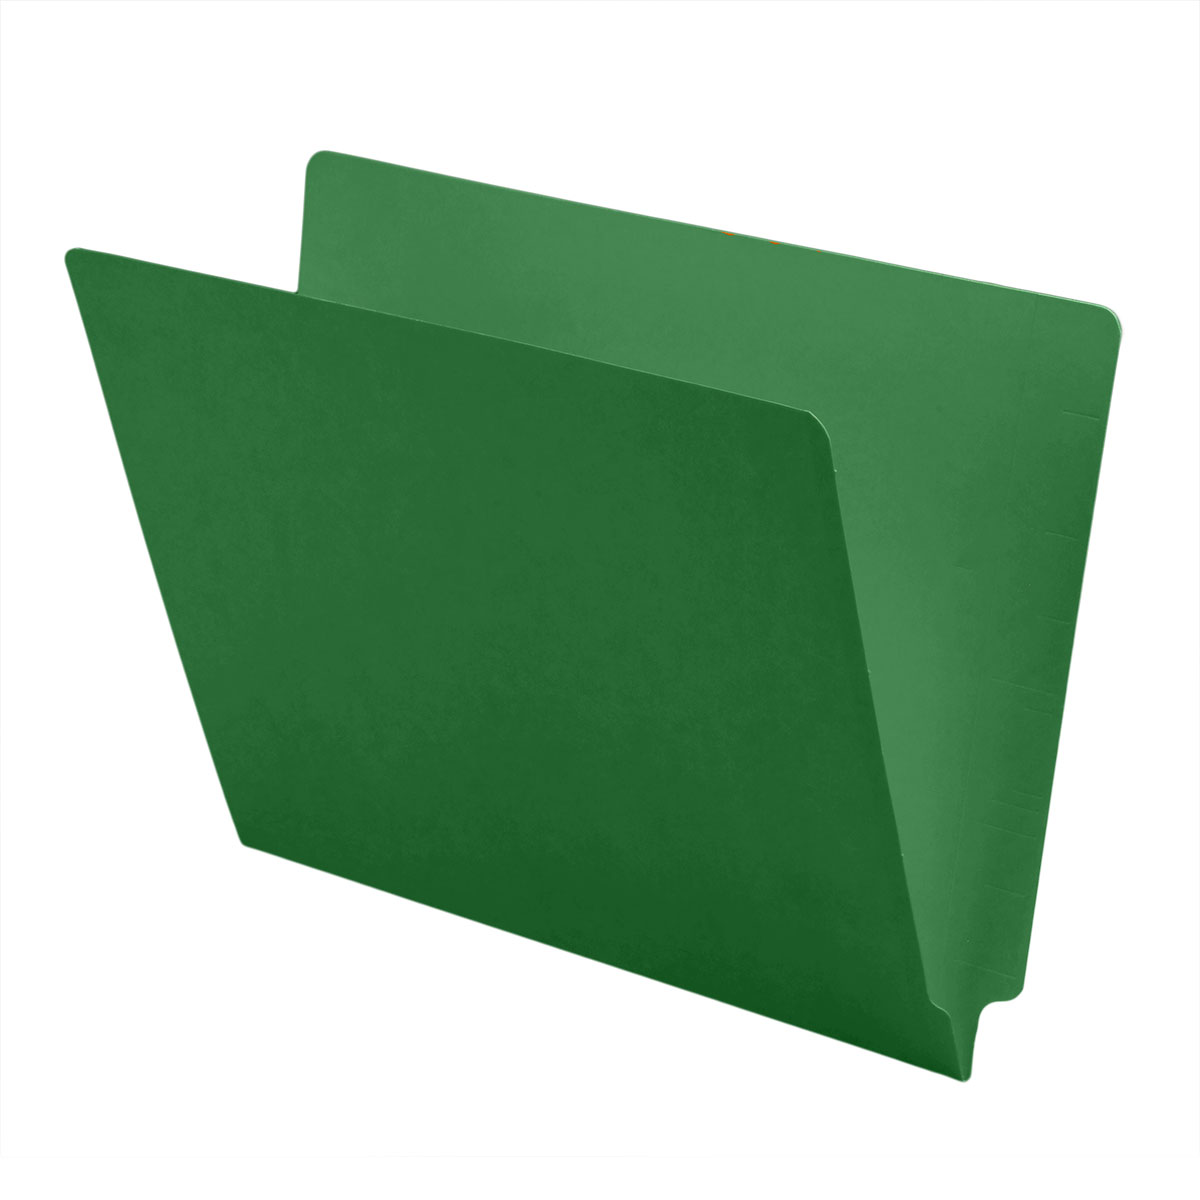 S-1600-GRN - 14 pt Color Folders, Full Cut 2-Ply End Tab, Letter Size, Green (Box of 50)